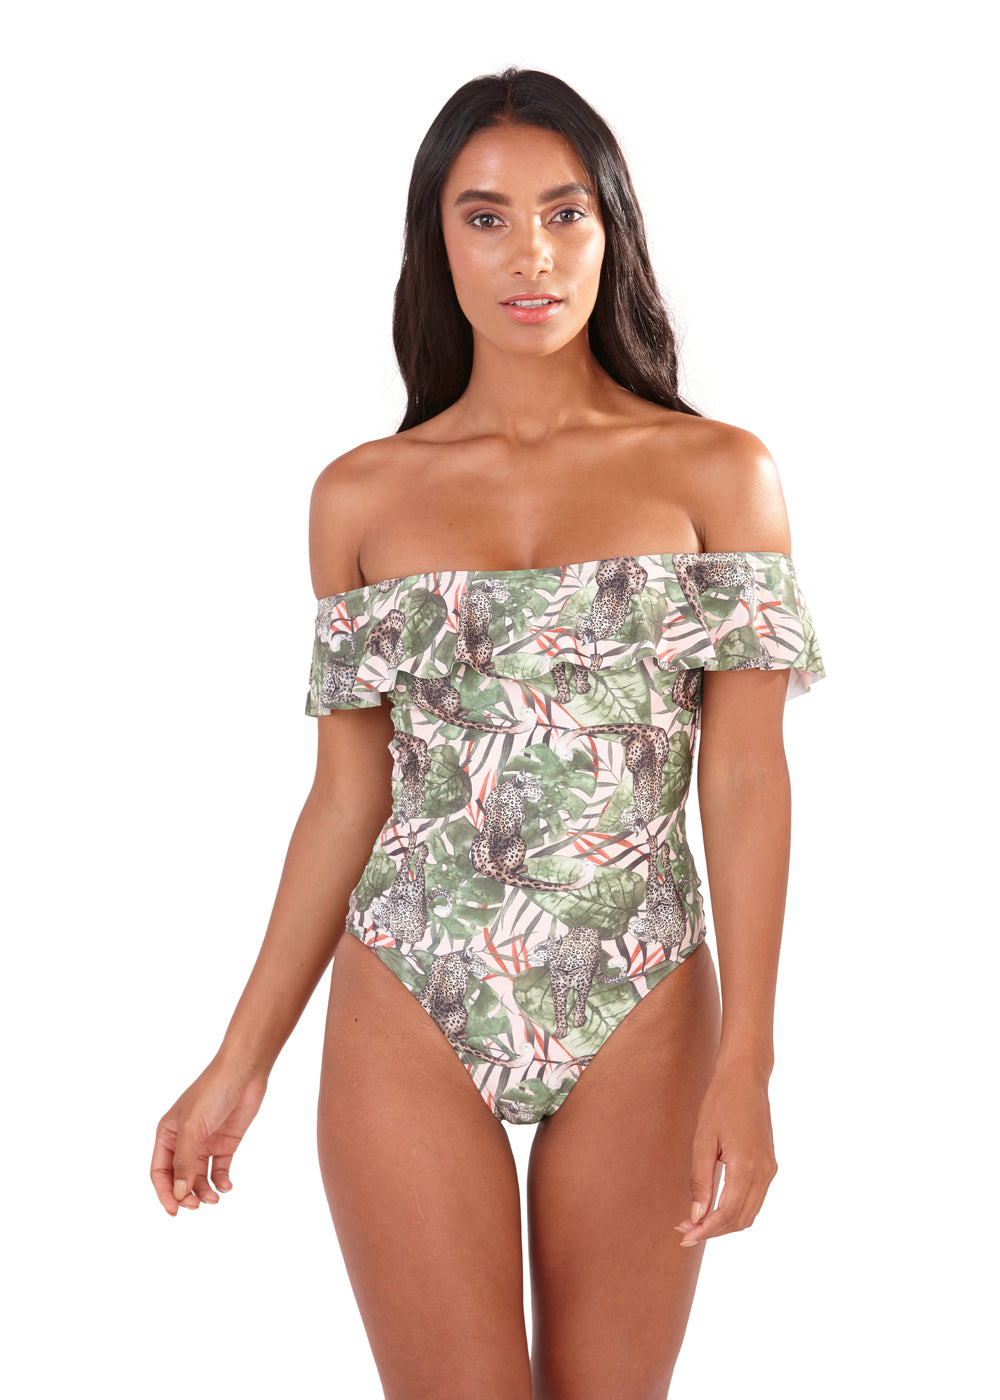 South Beach - Ferne Safari Print Off the Shoulder Frill Bardot Swimsuit